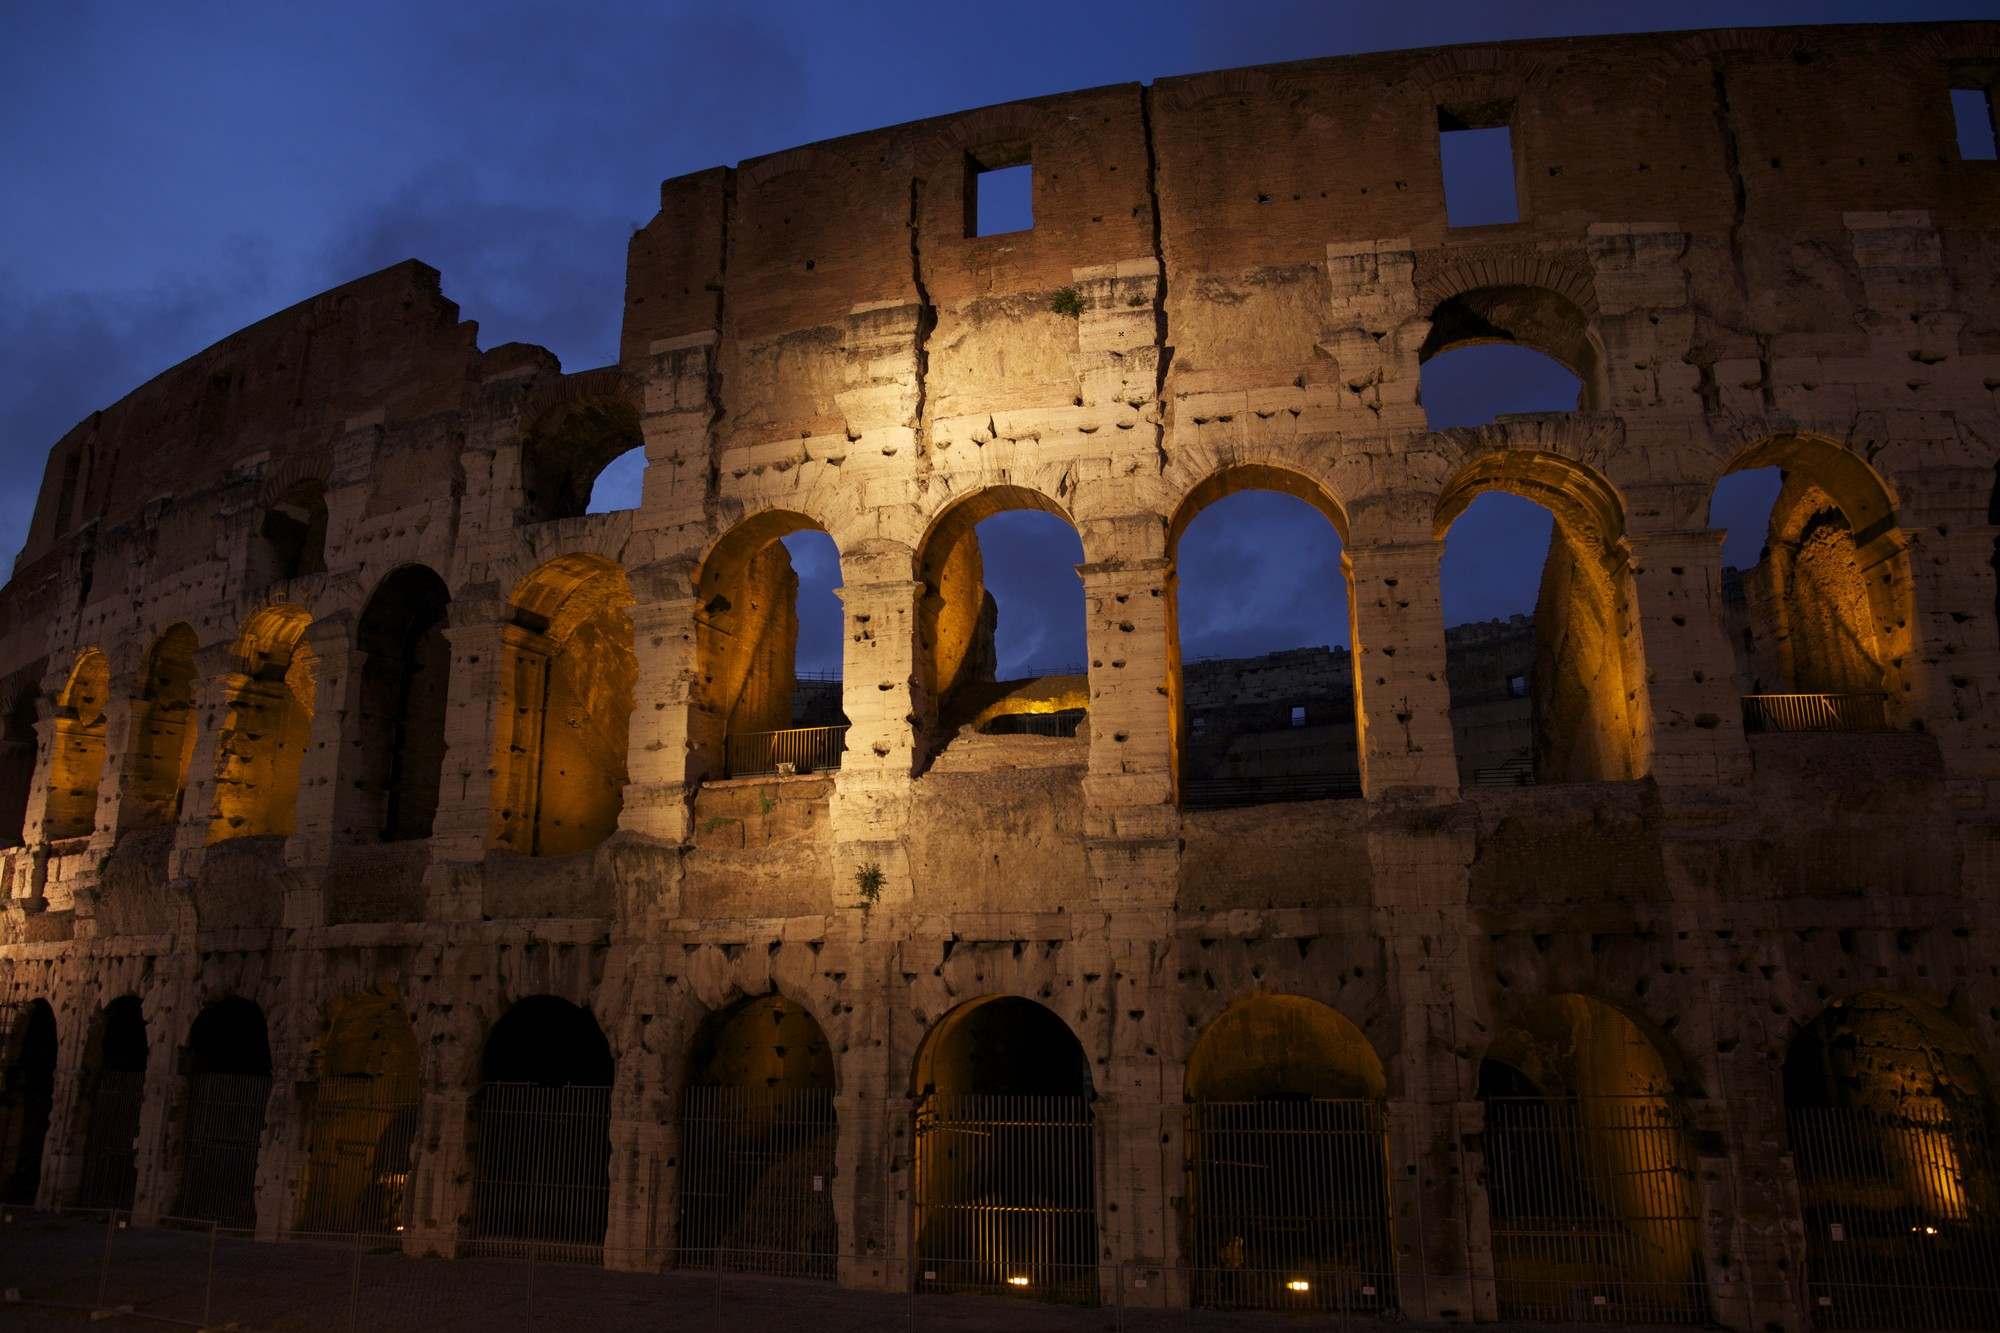 "NOVA's ""Building Wonders"" Series to Investigate Ancient Architectural Mysteries, The ruins of the Colosseum still makes a powerful impression. Image © Providence Pictures"